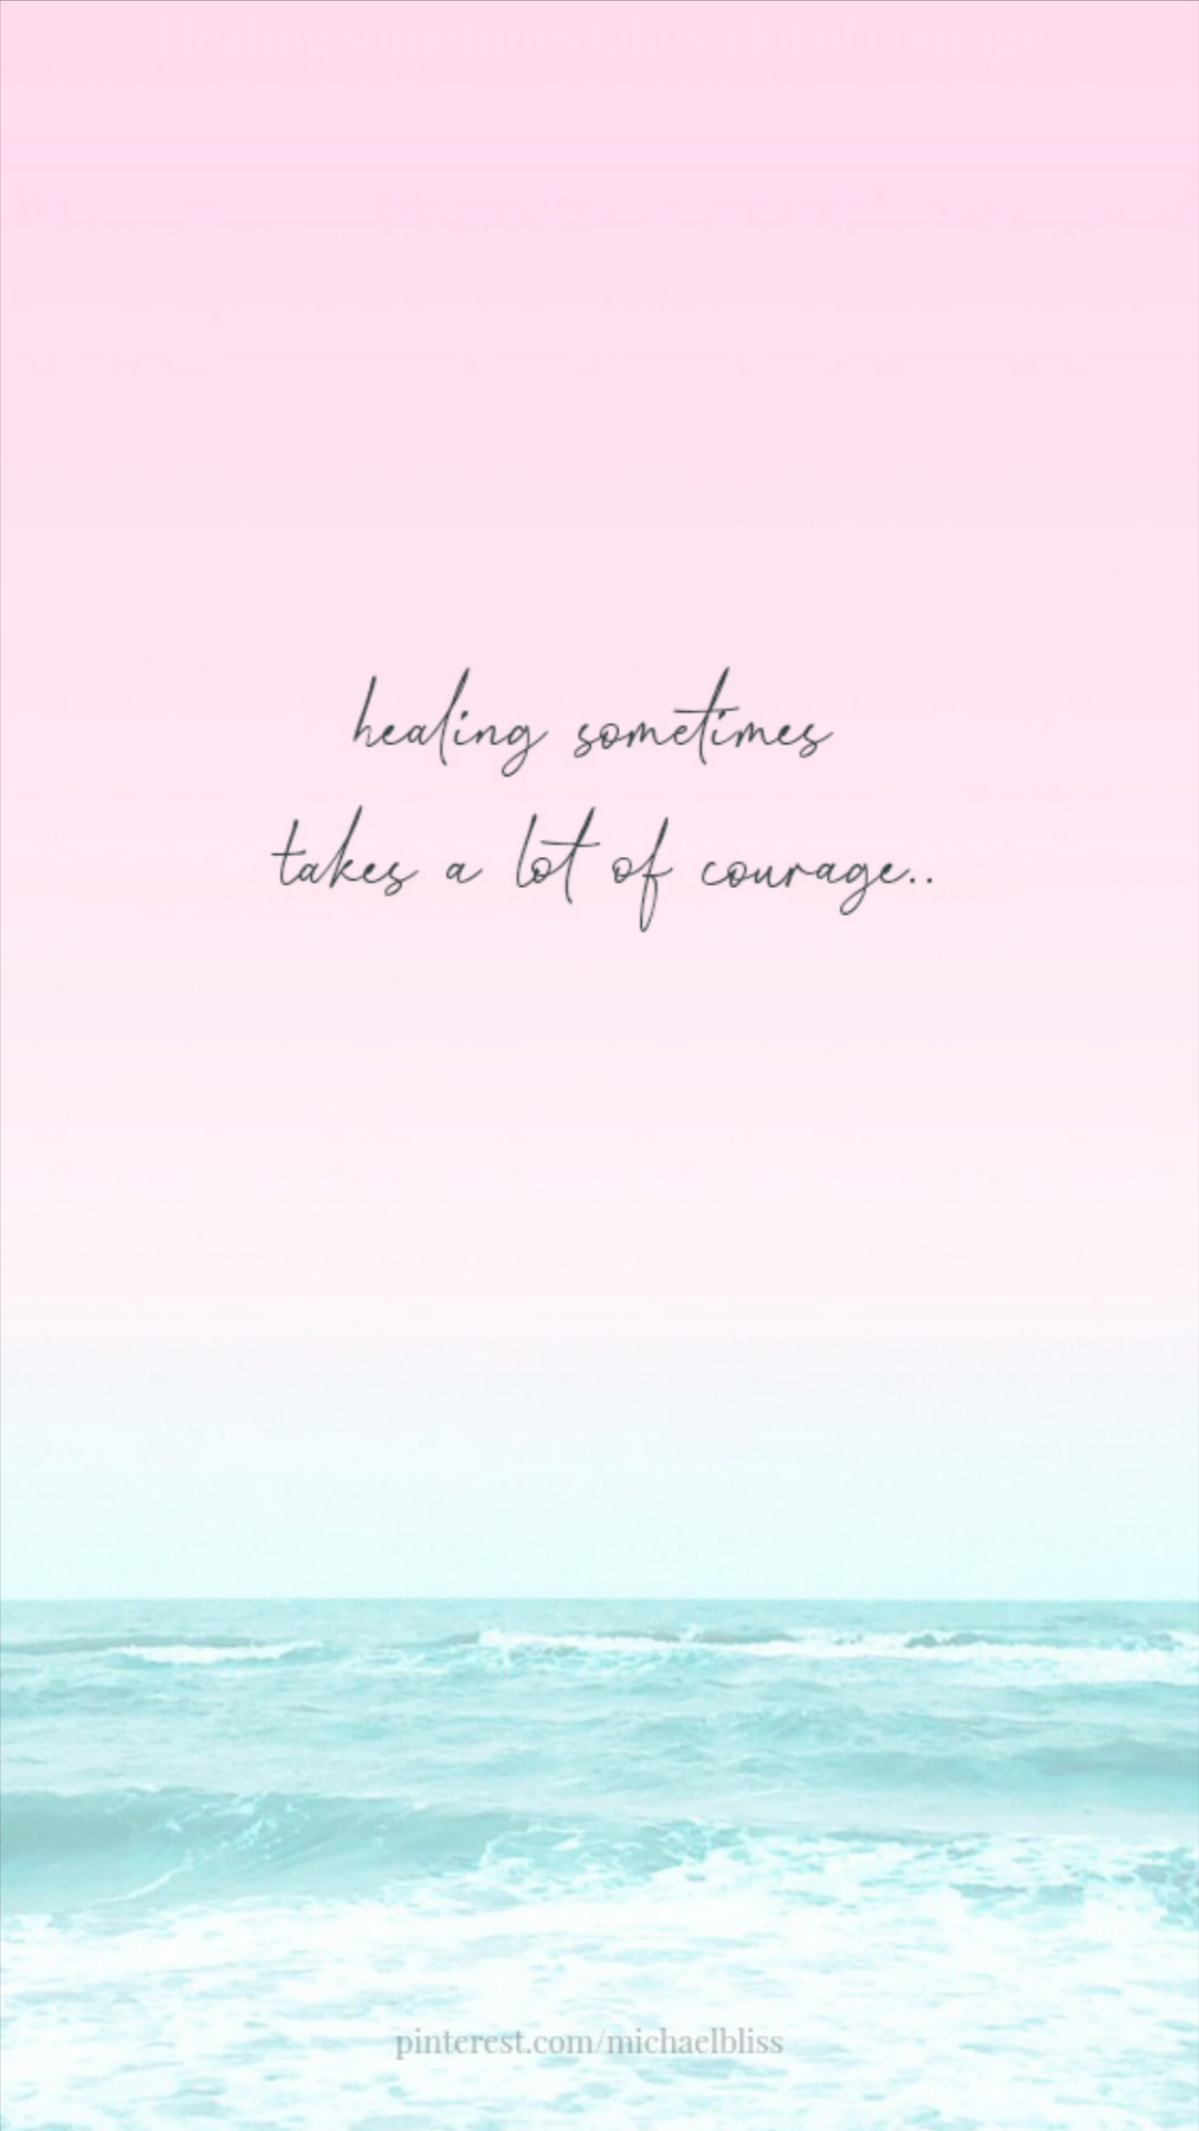 Healing sometimes takes a lot of courage